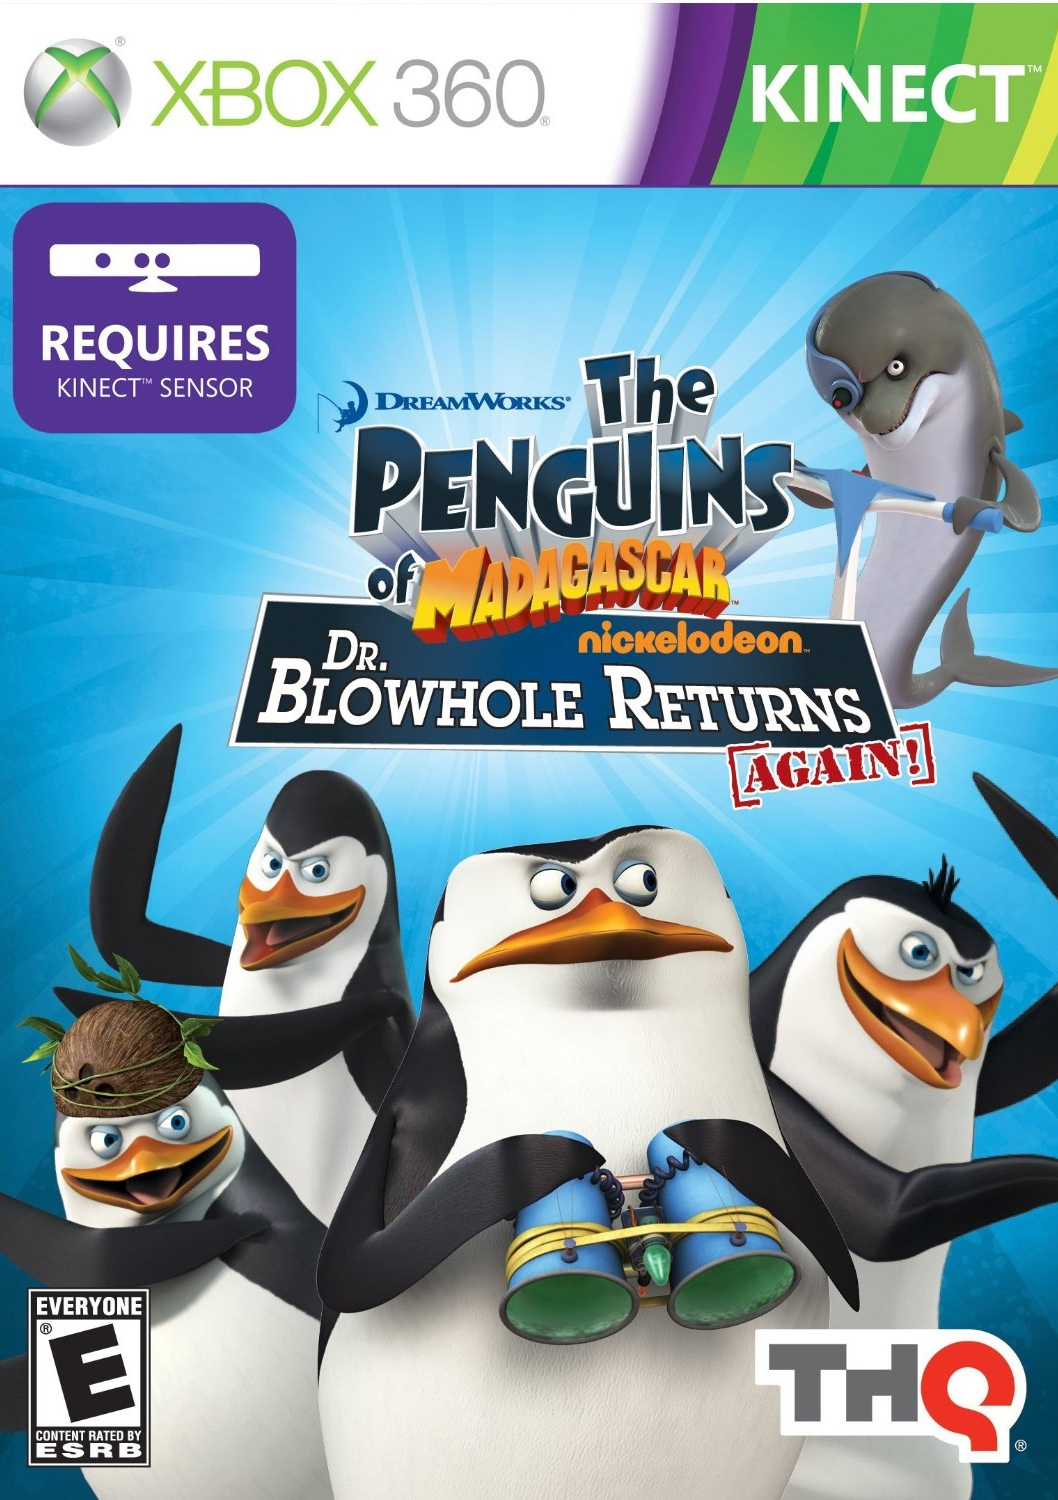 Penguins of Madagascar: Dr. Blowhole Returns Again!